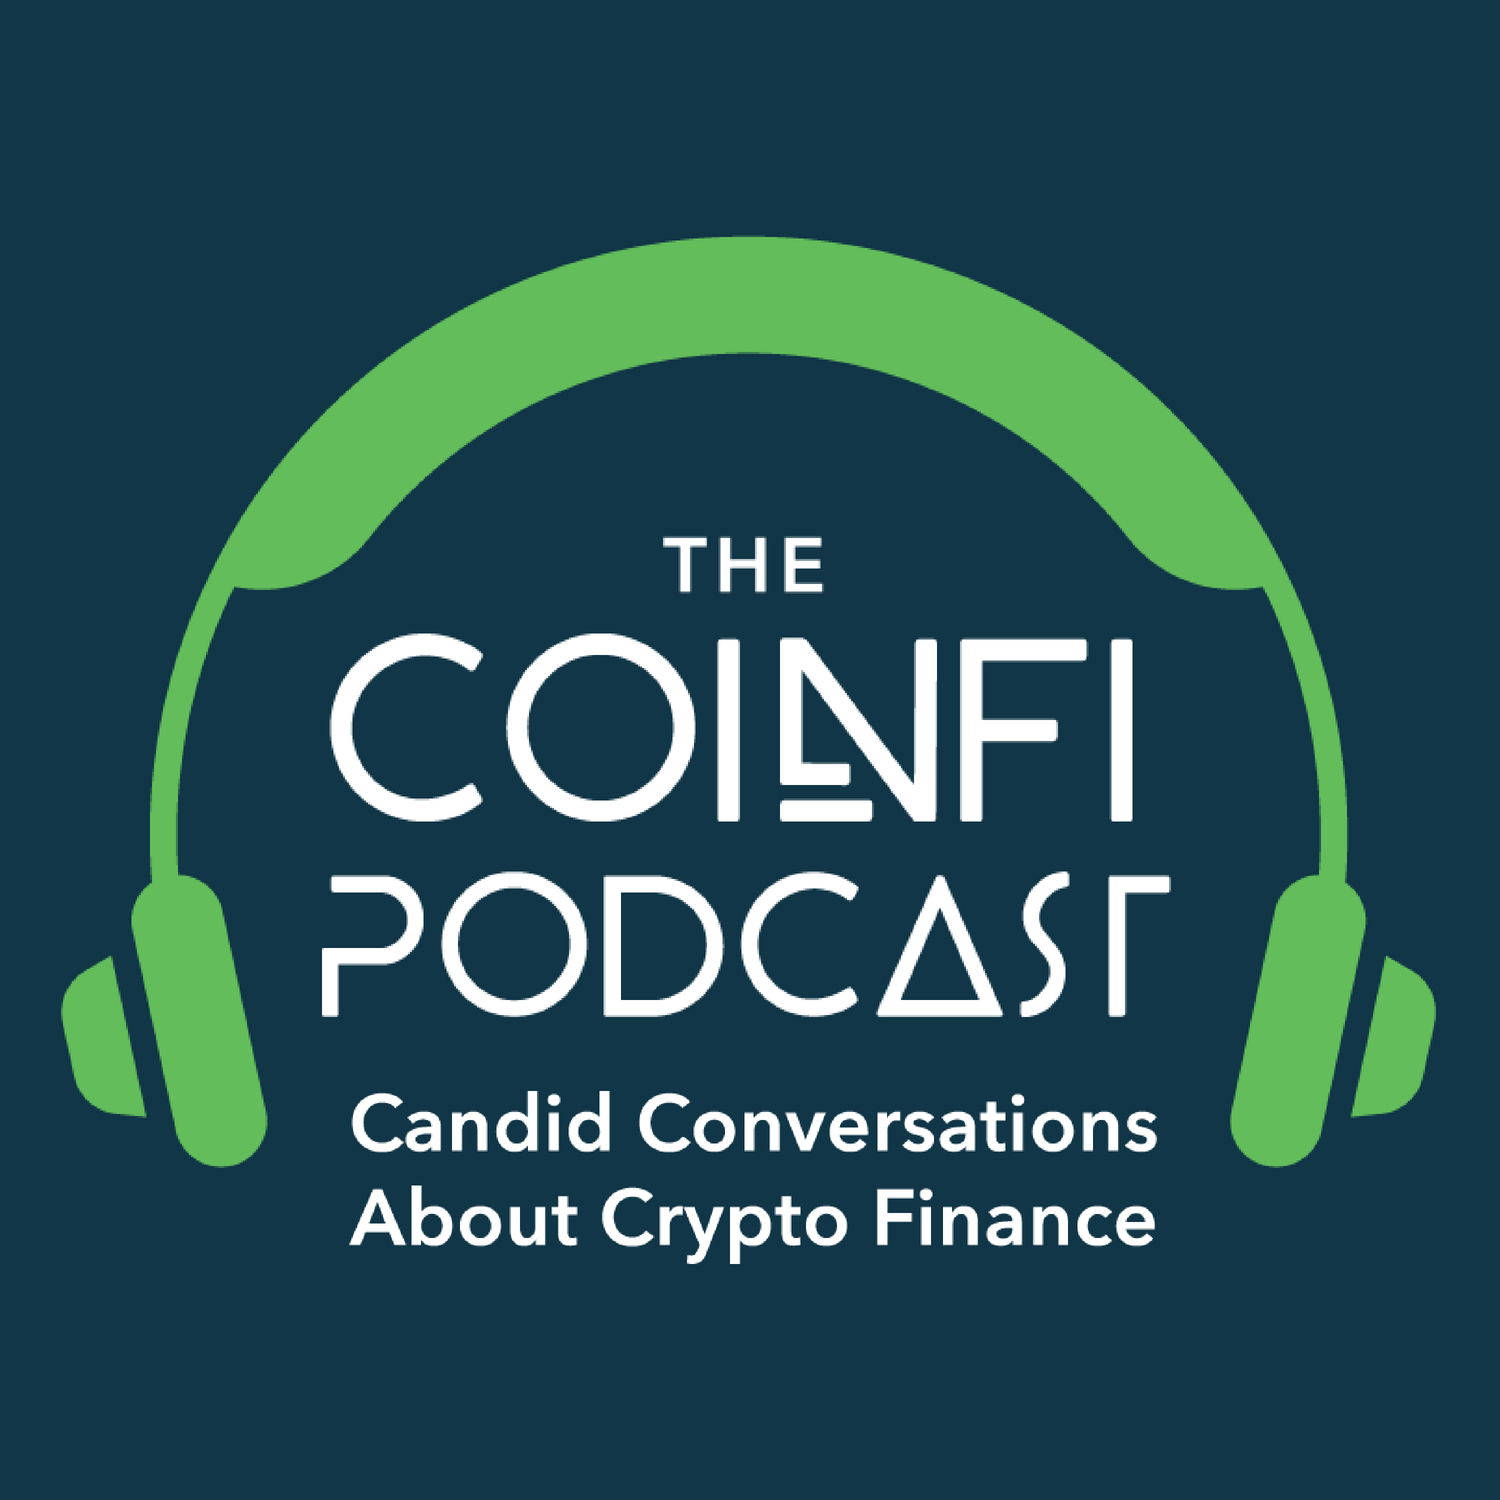 The CoinFi Podcast: Conversations About Crypto Finance (Bitcoin, Ethereum, Blockchain, ICOs, Cryptocurrency) show art